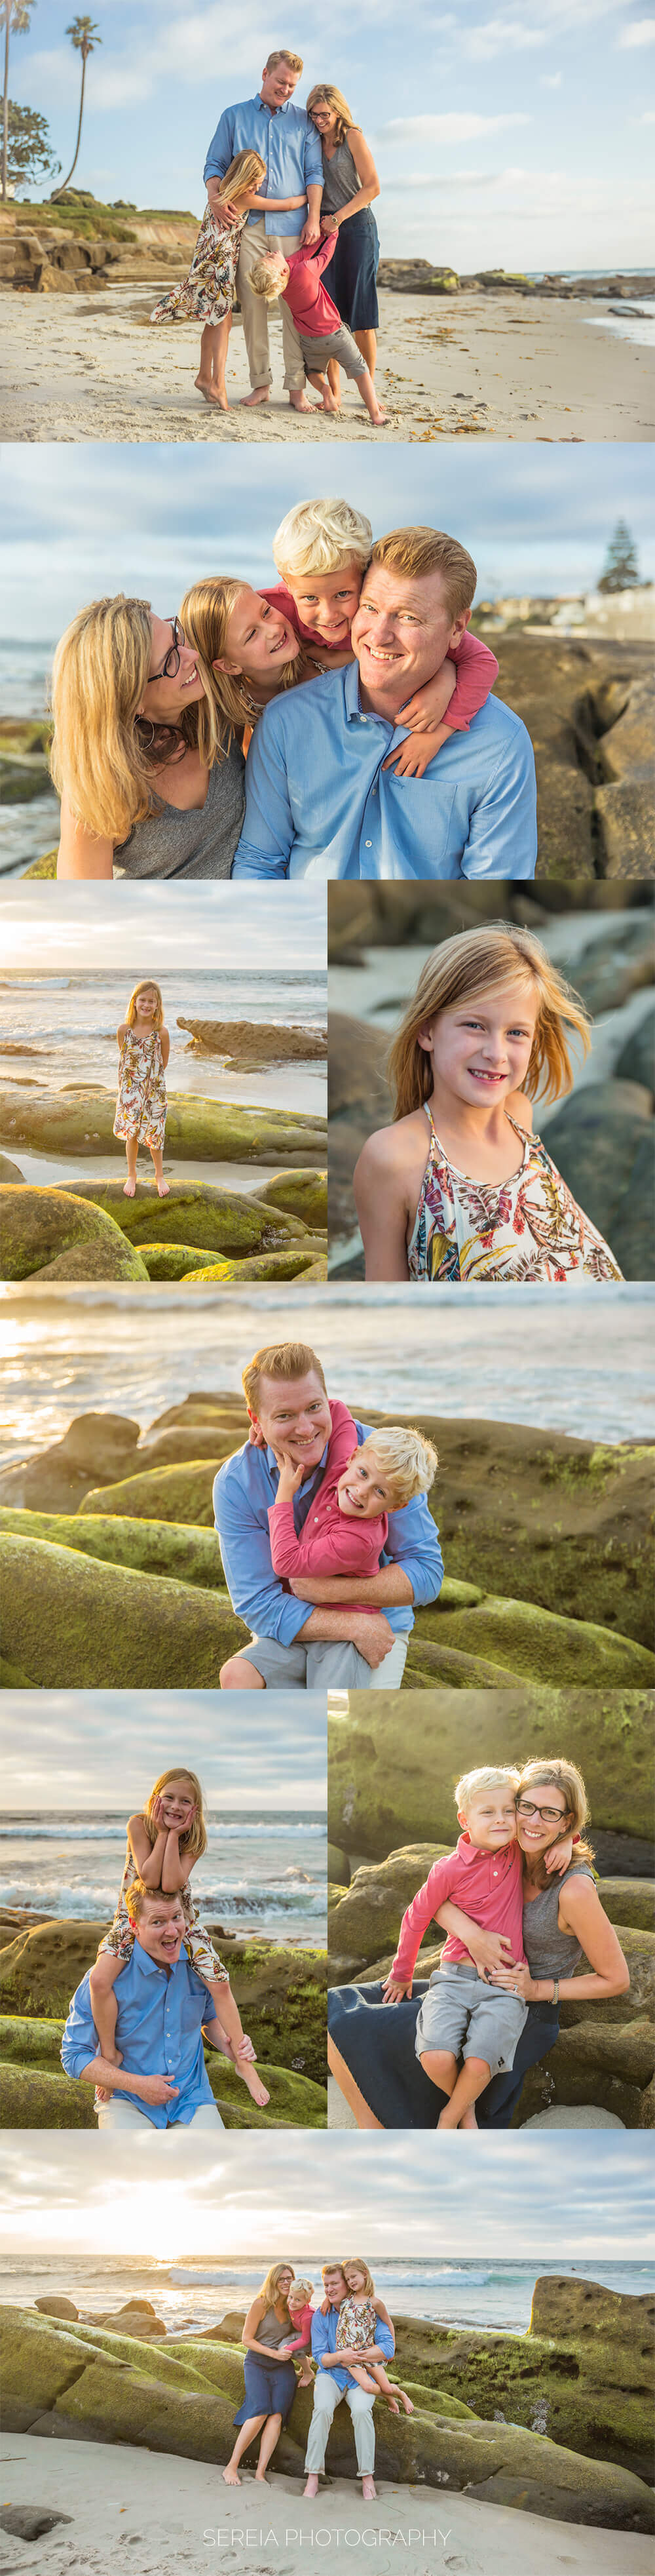 La Jolla Family Photography